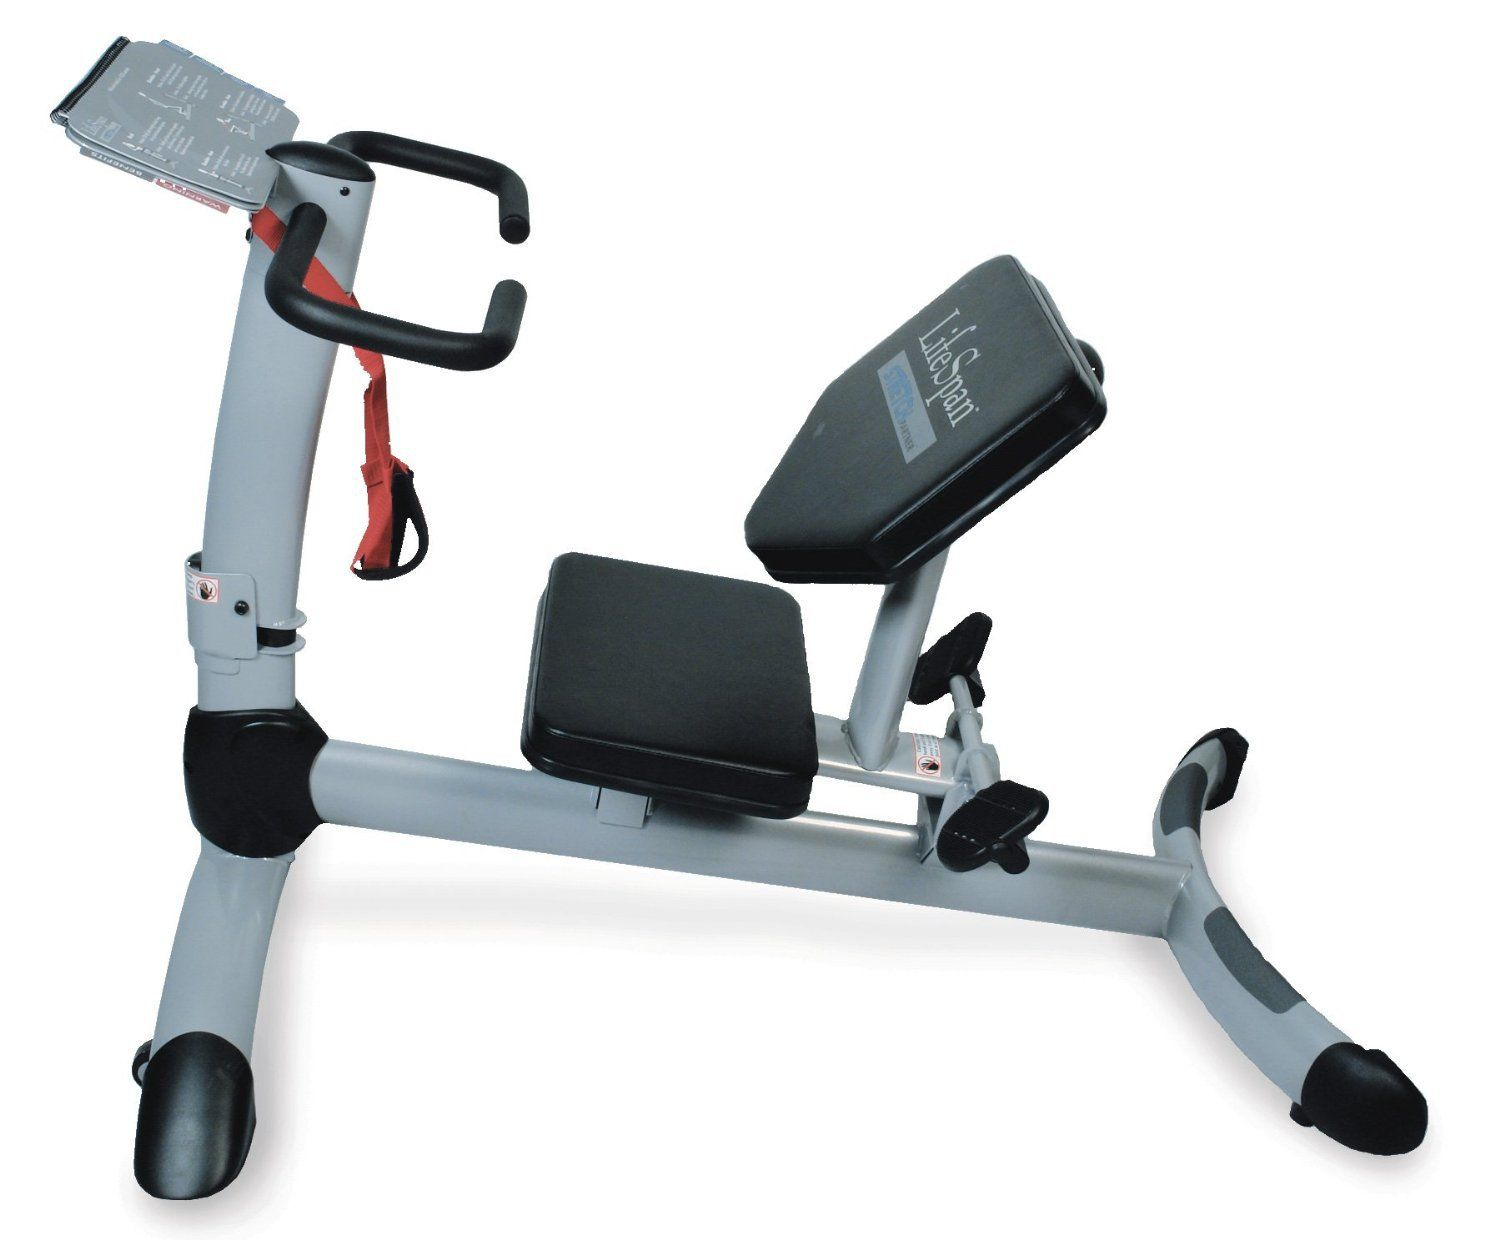 Lifespan Fitness Sp1000 Stretching Machine Review Fitnessstep1 No Equipment Workout Stretching Machine At Home Gym